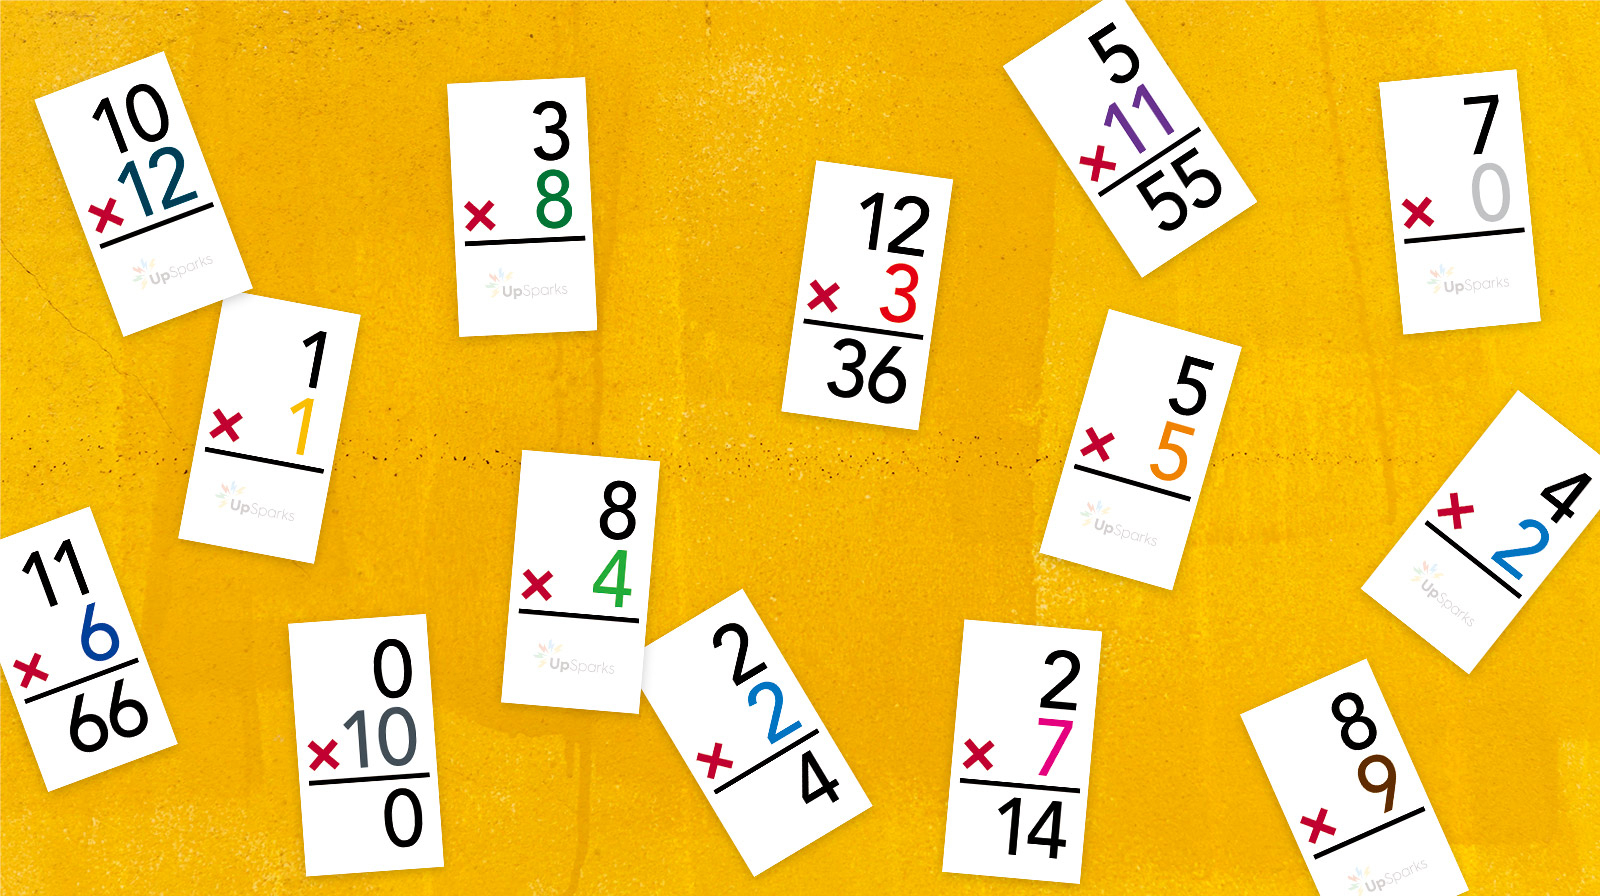 Free Multiplication Flash Cards Printable Sheets From Upsparks - Free Printable Multiplication Flash Cards